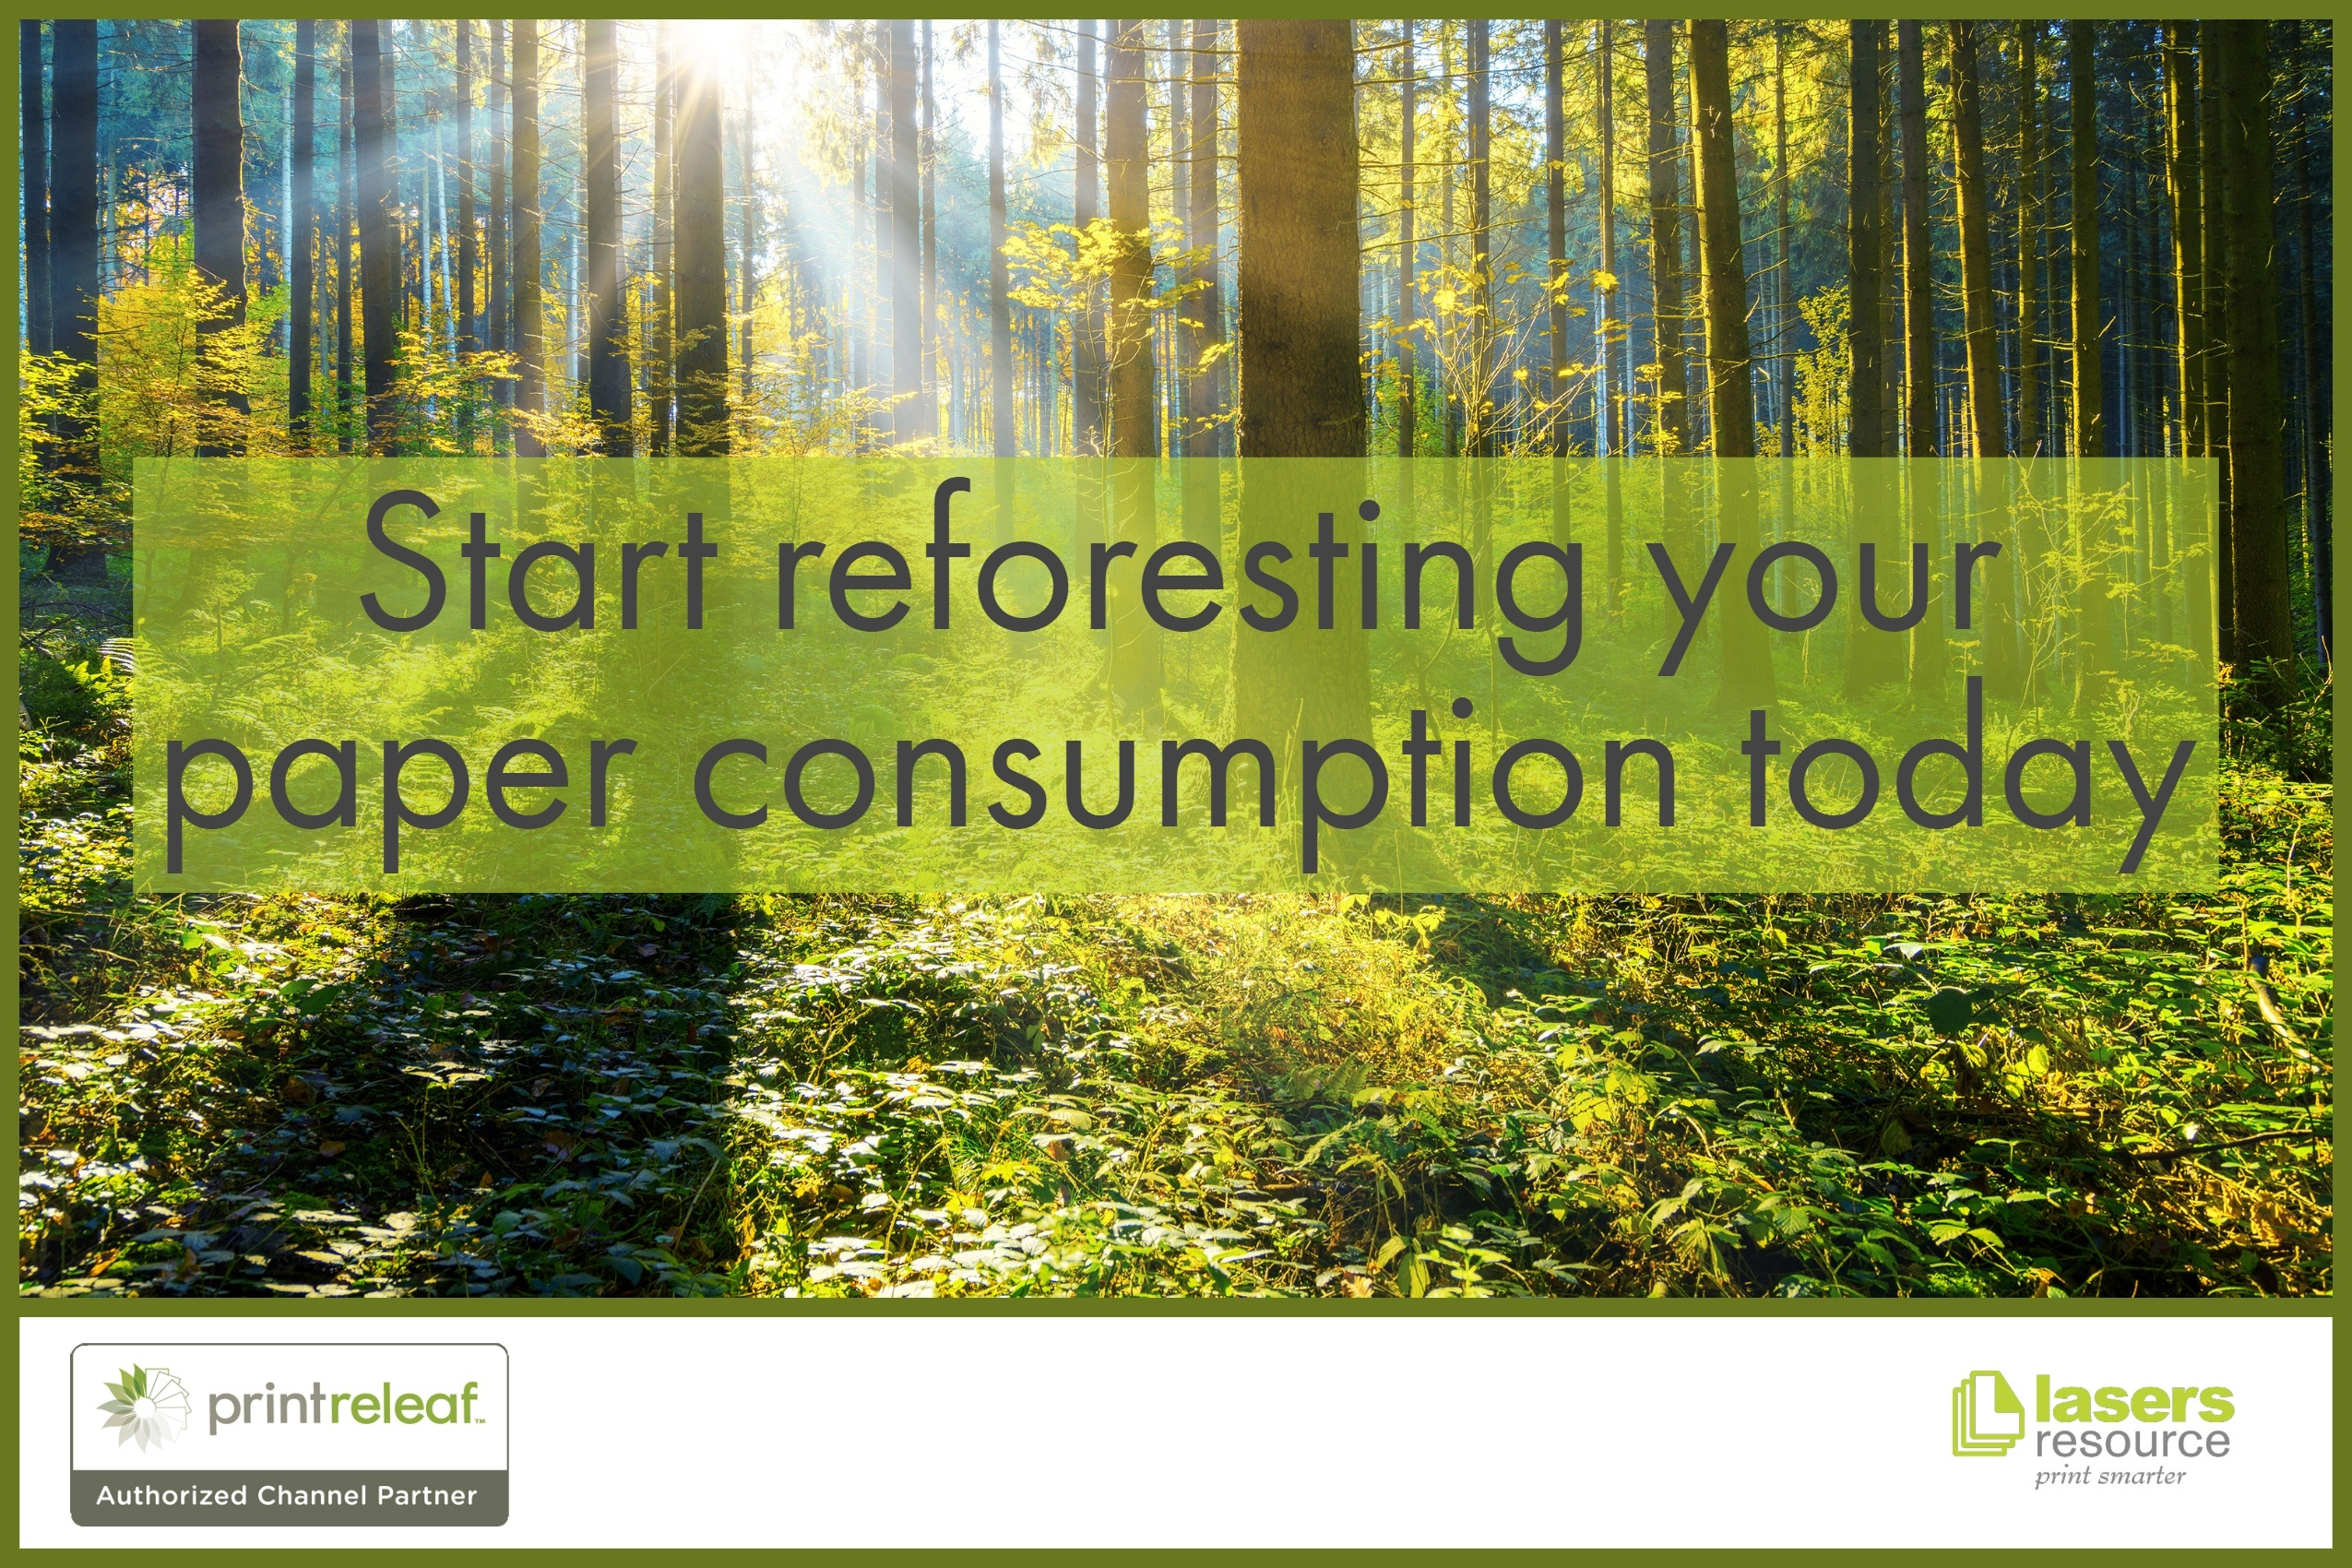 Start reforesting your paper consumption today with PrintReleaf and Lasers Resource